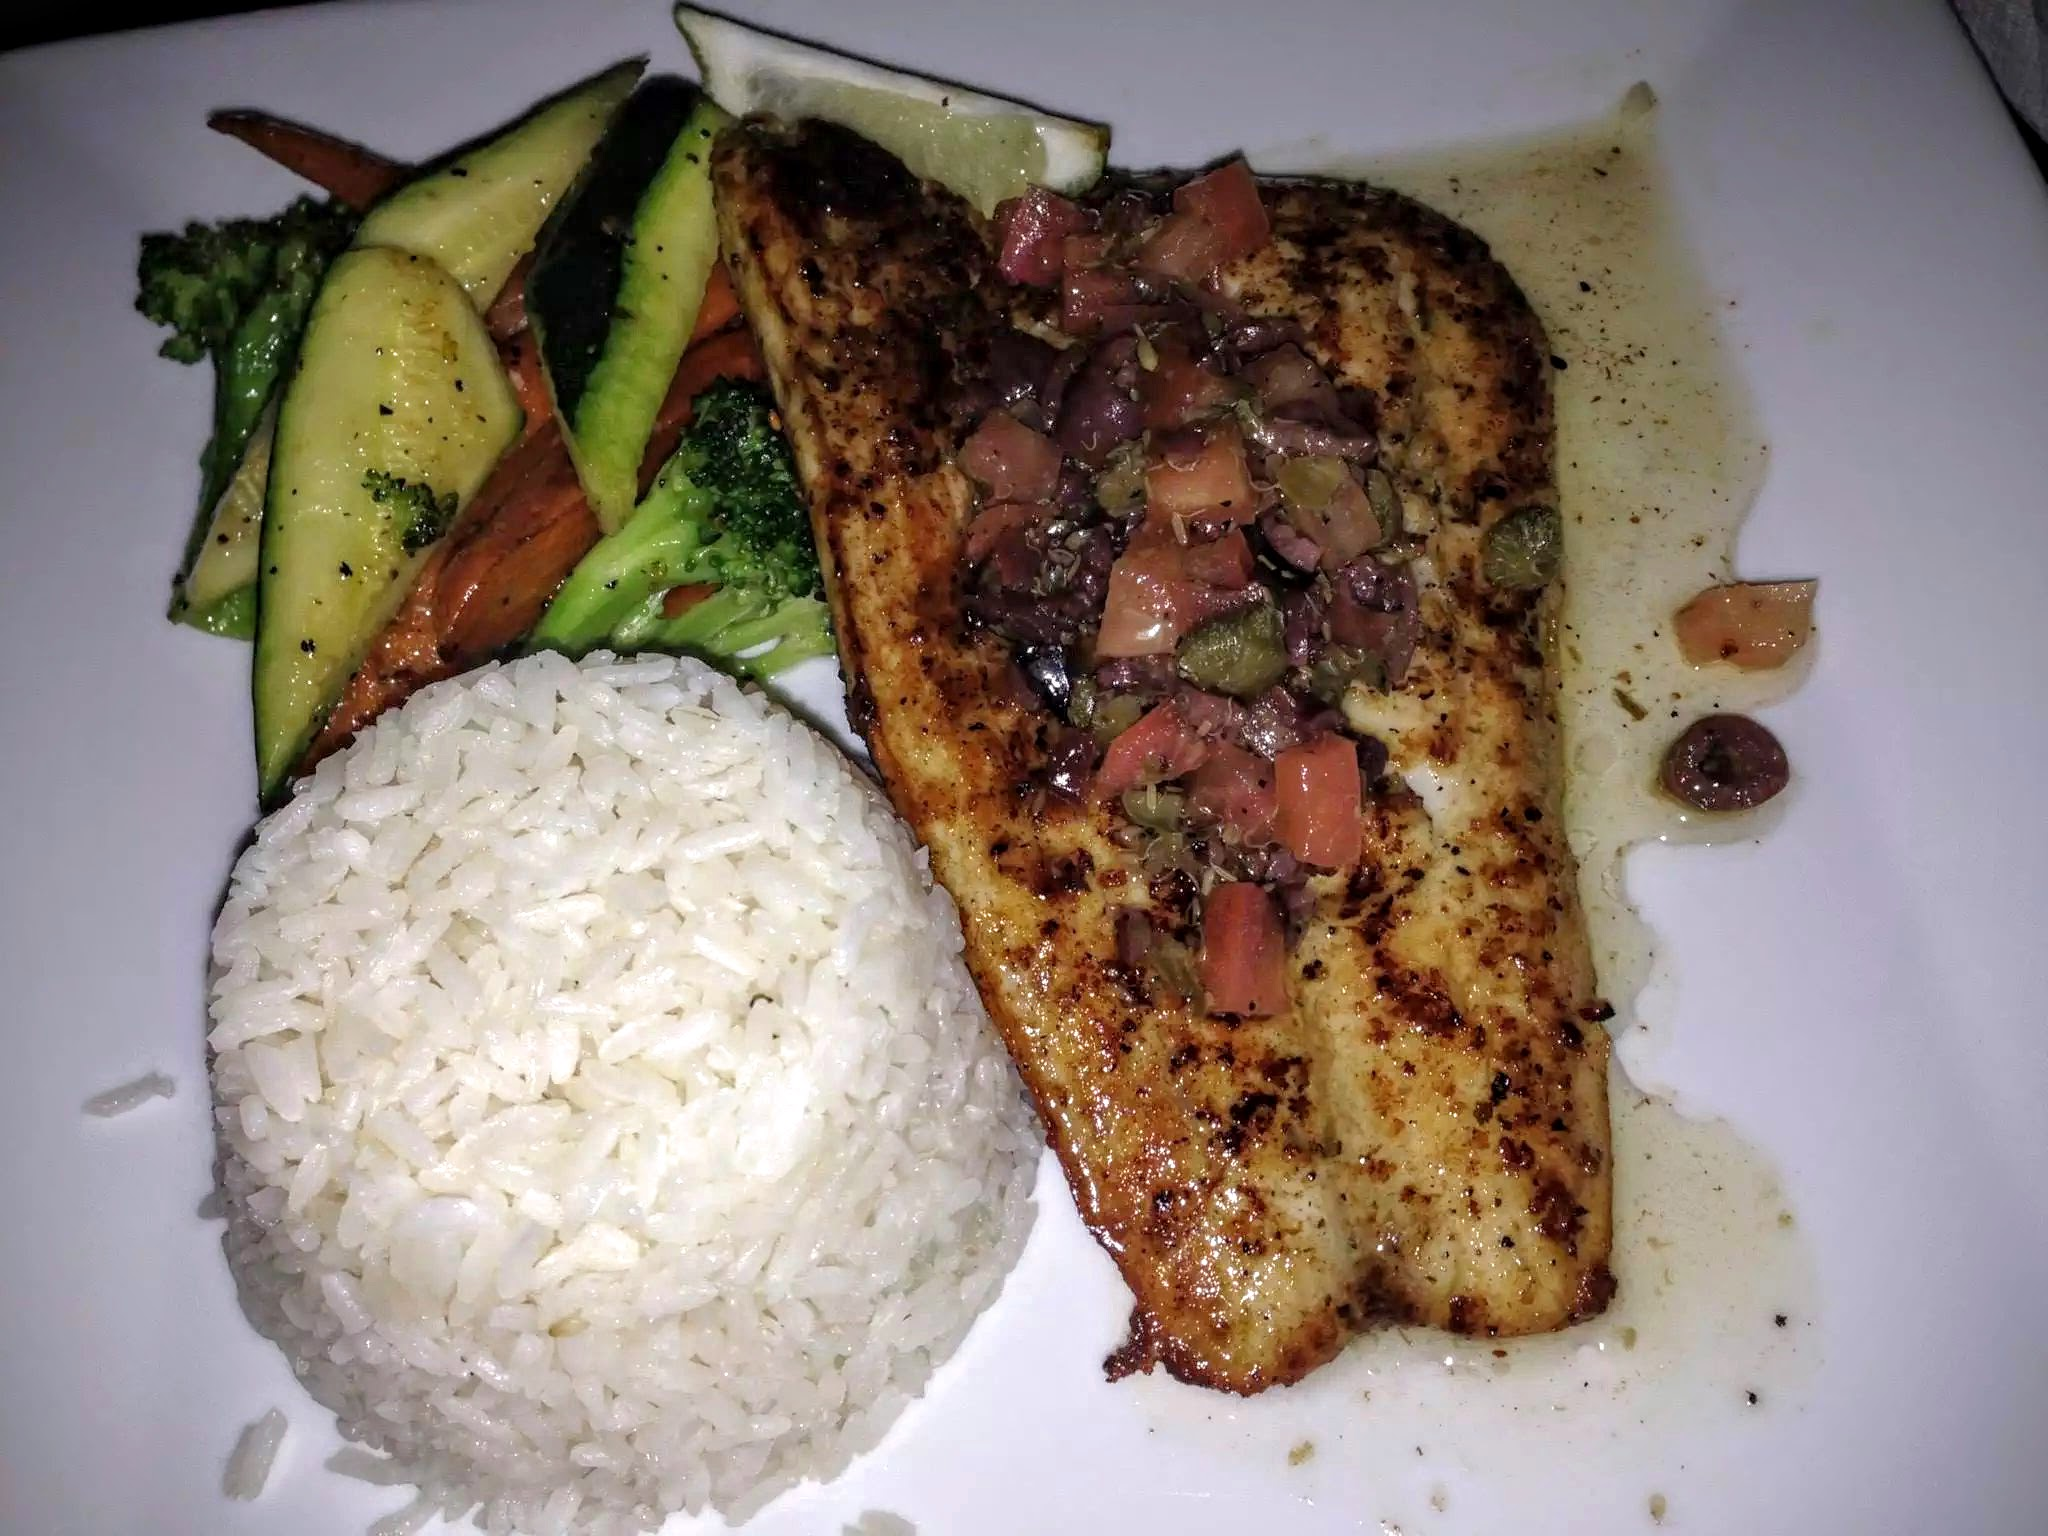 The Daily Catch - Pan Seared Fish, Basmati Rice with Sauteed Seasonal Vegetables